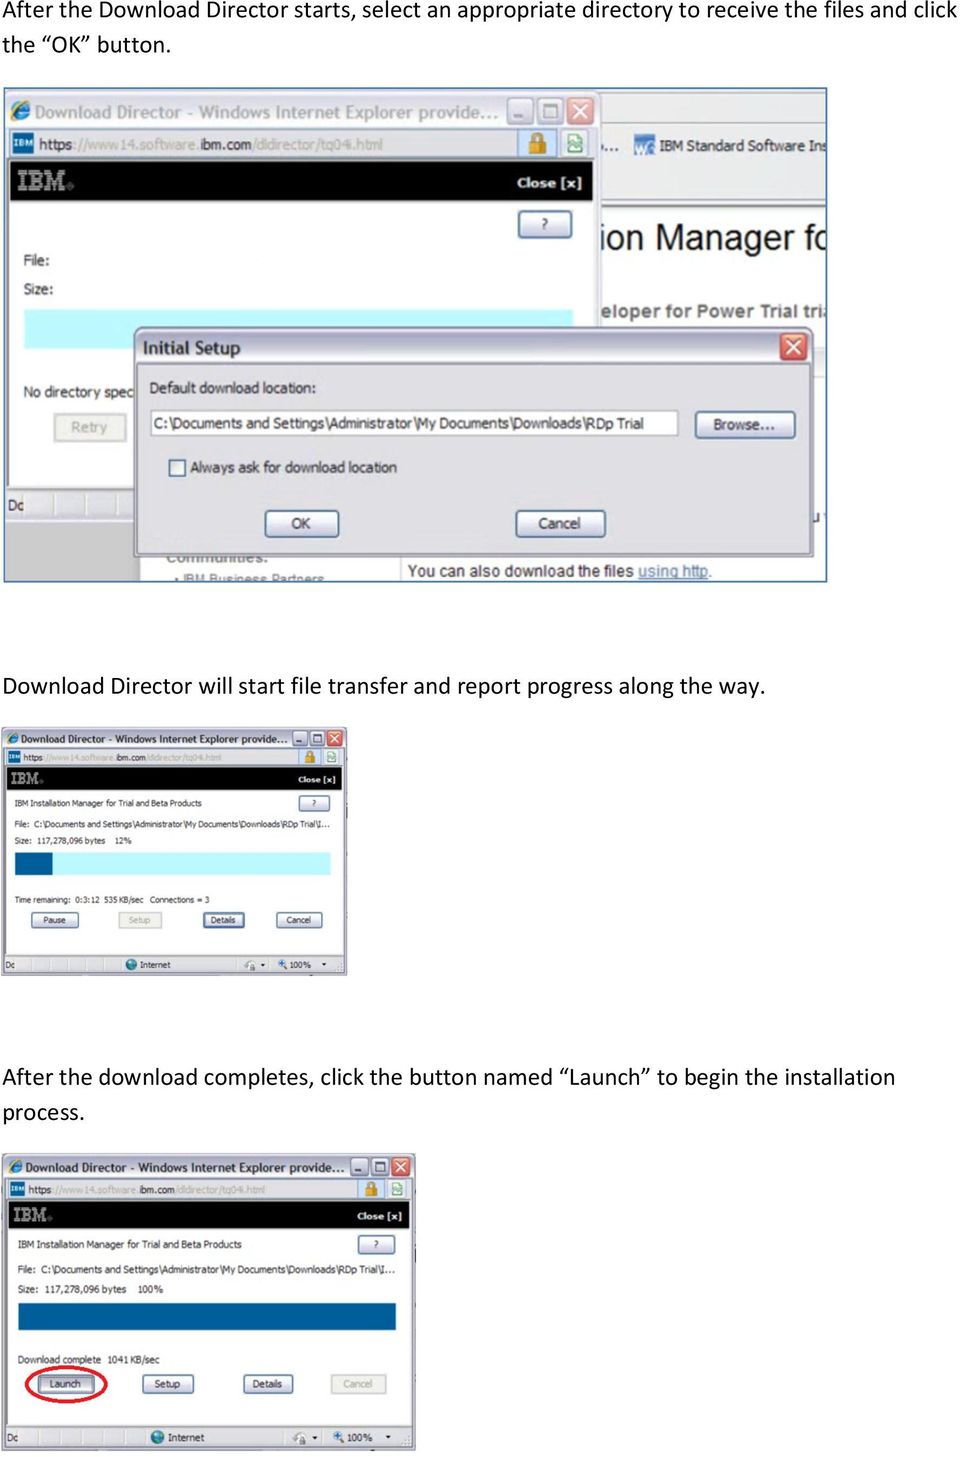 Download Director will start file transfer and report progress along